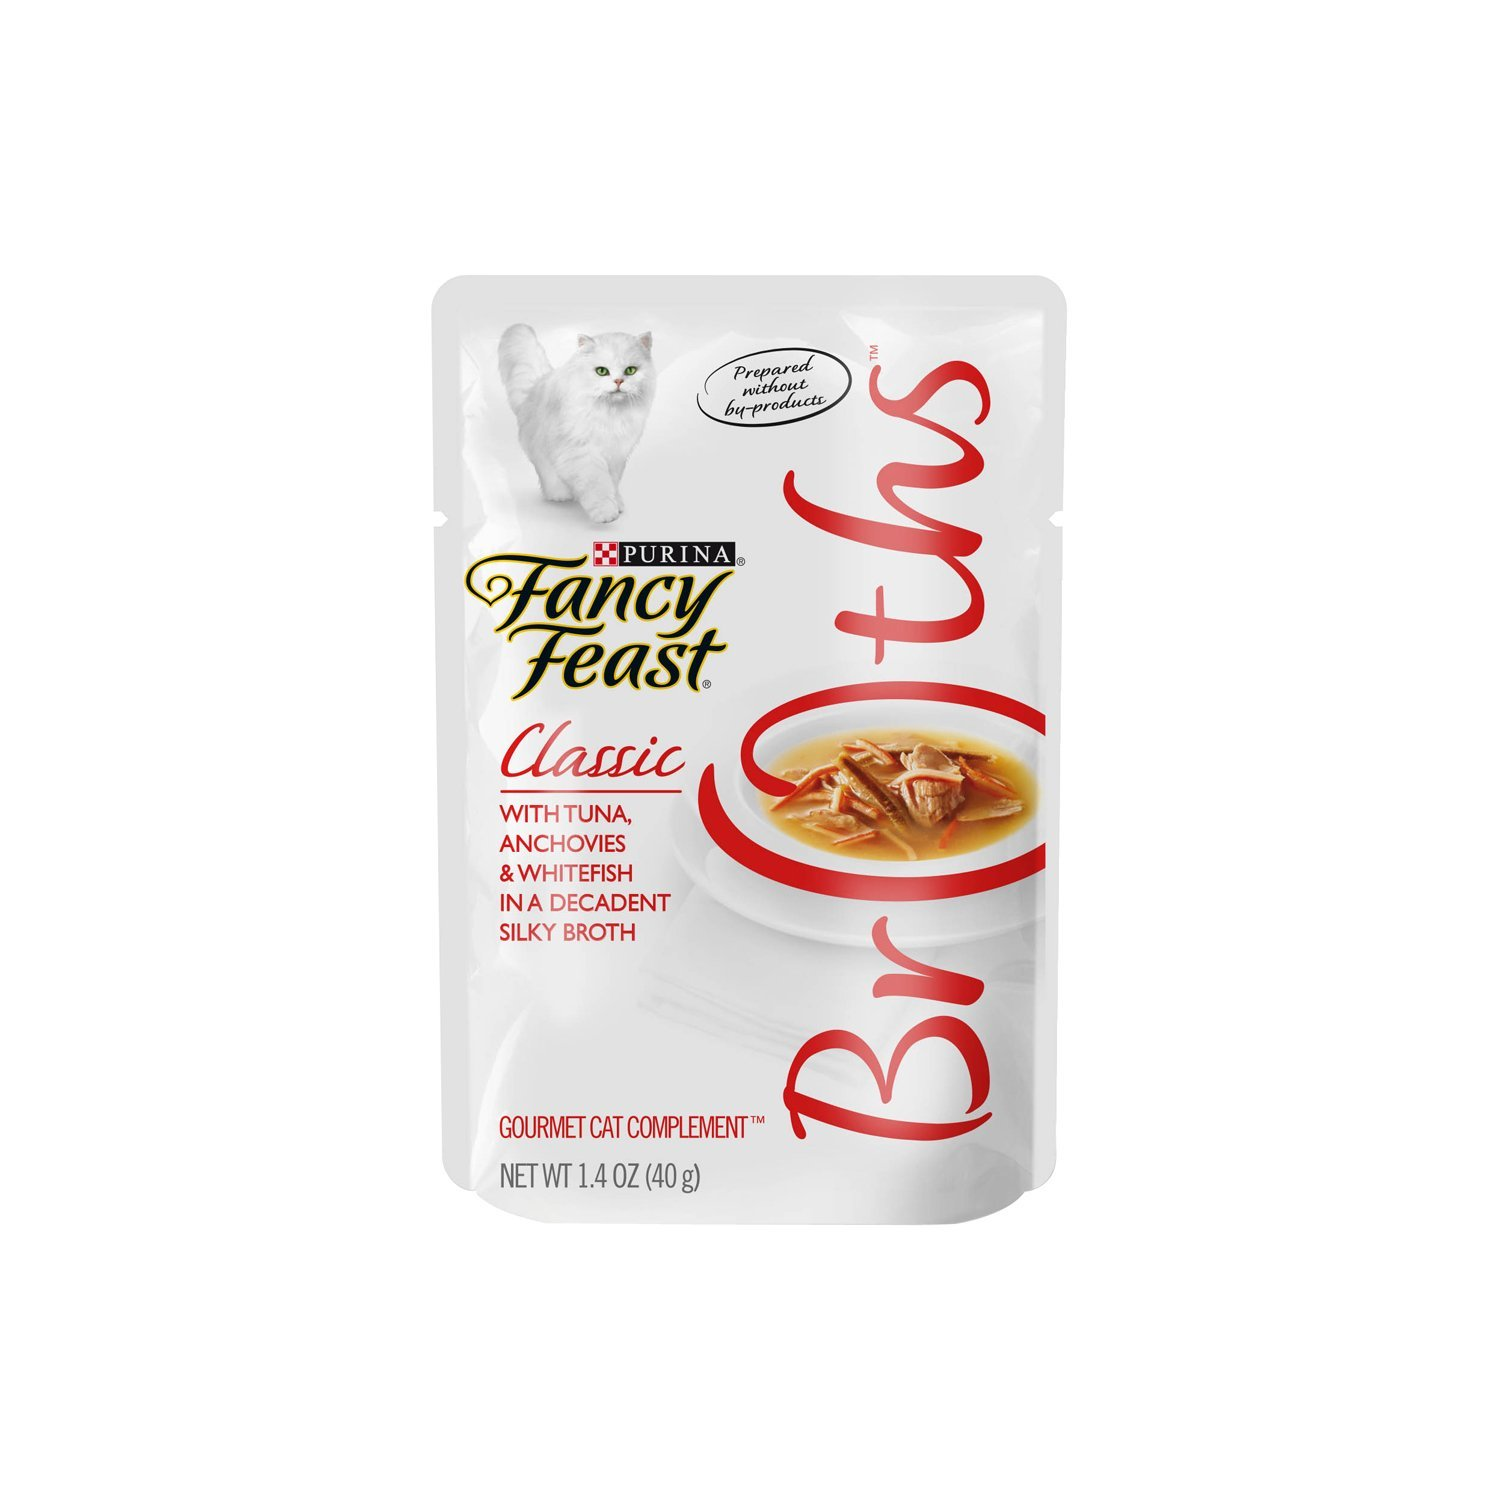 Purina Fancy Feast Fancy Feast Broths for Cats, Classic, With Tuna Anchovies and Whitefish - (16) 1.4-Ounce Pouches